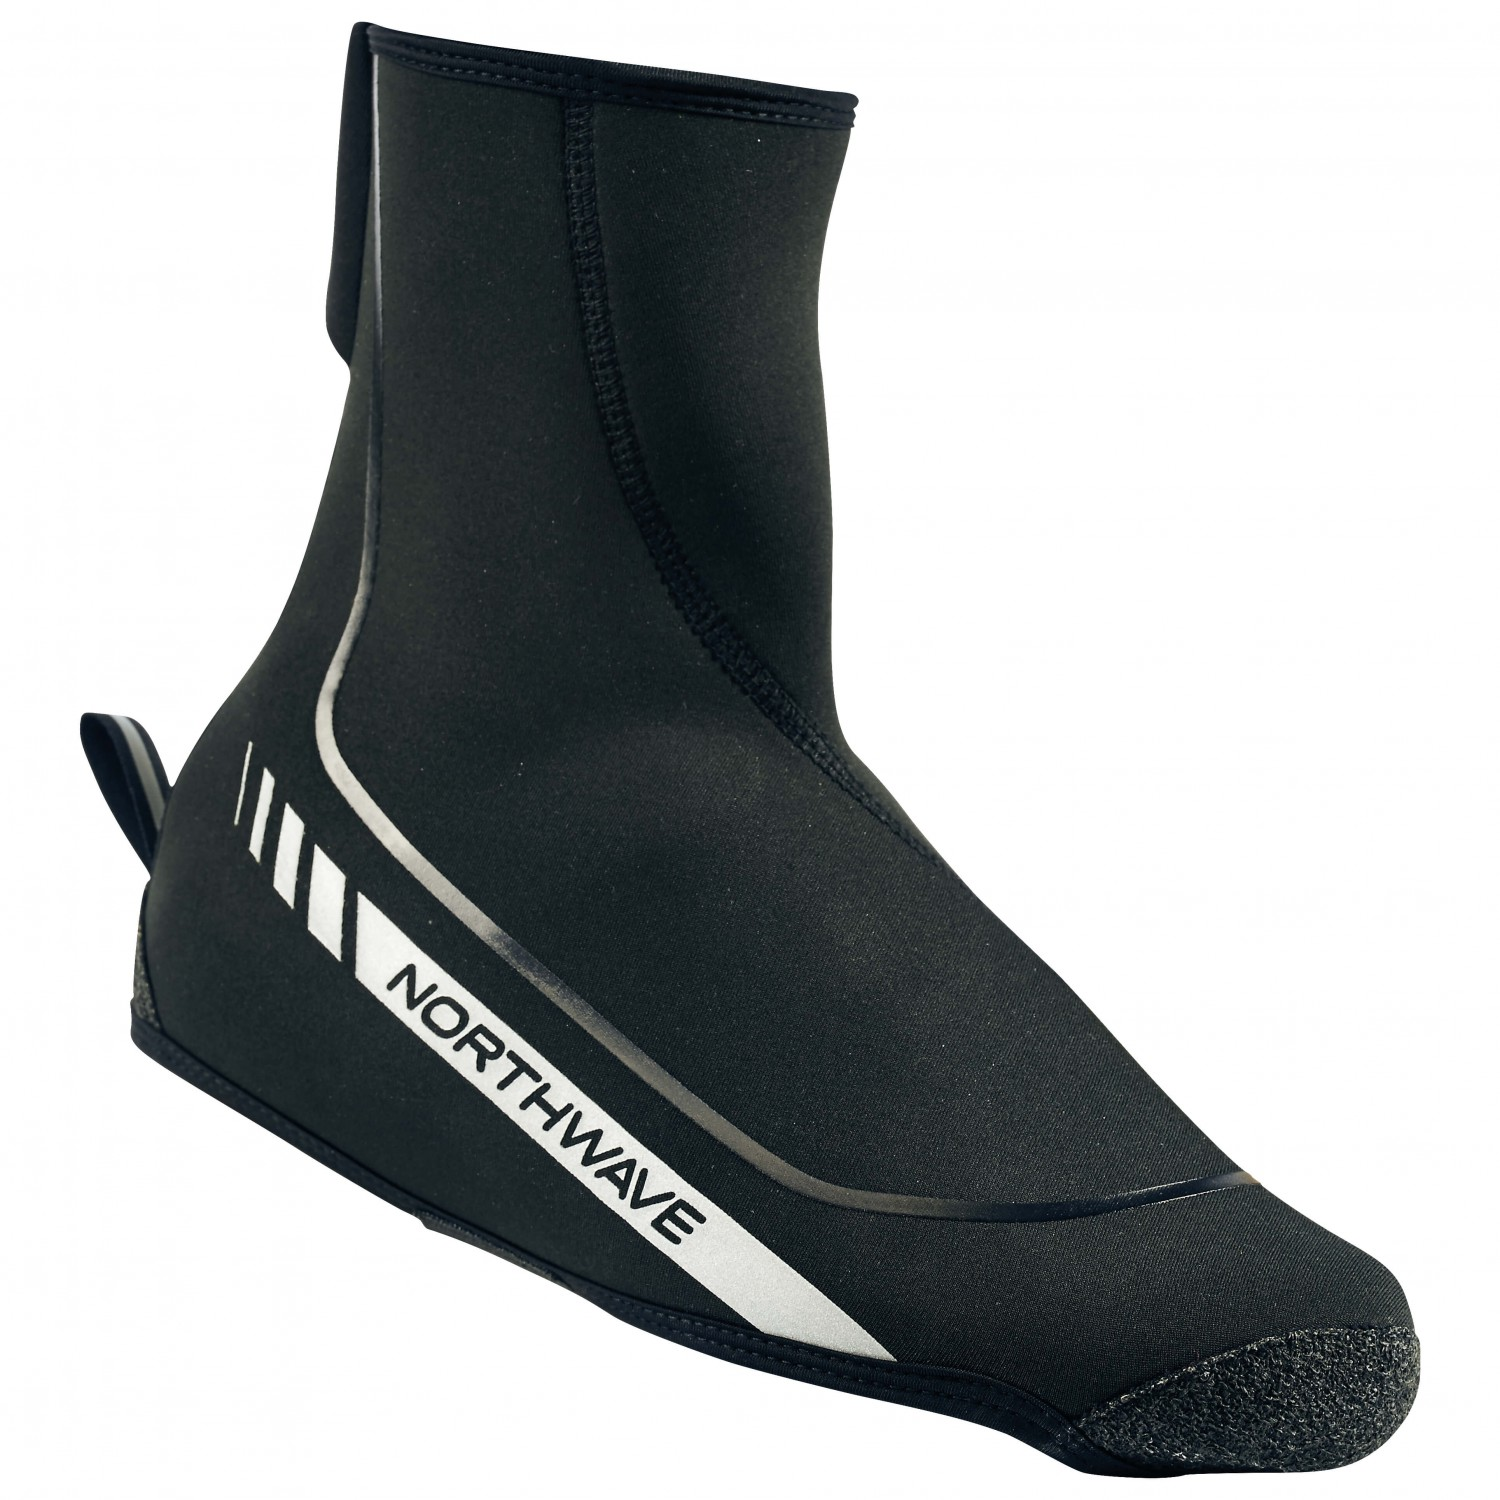 Northwave - Sonic High Shoecover - Überschuhe Black